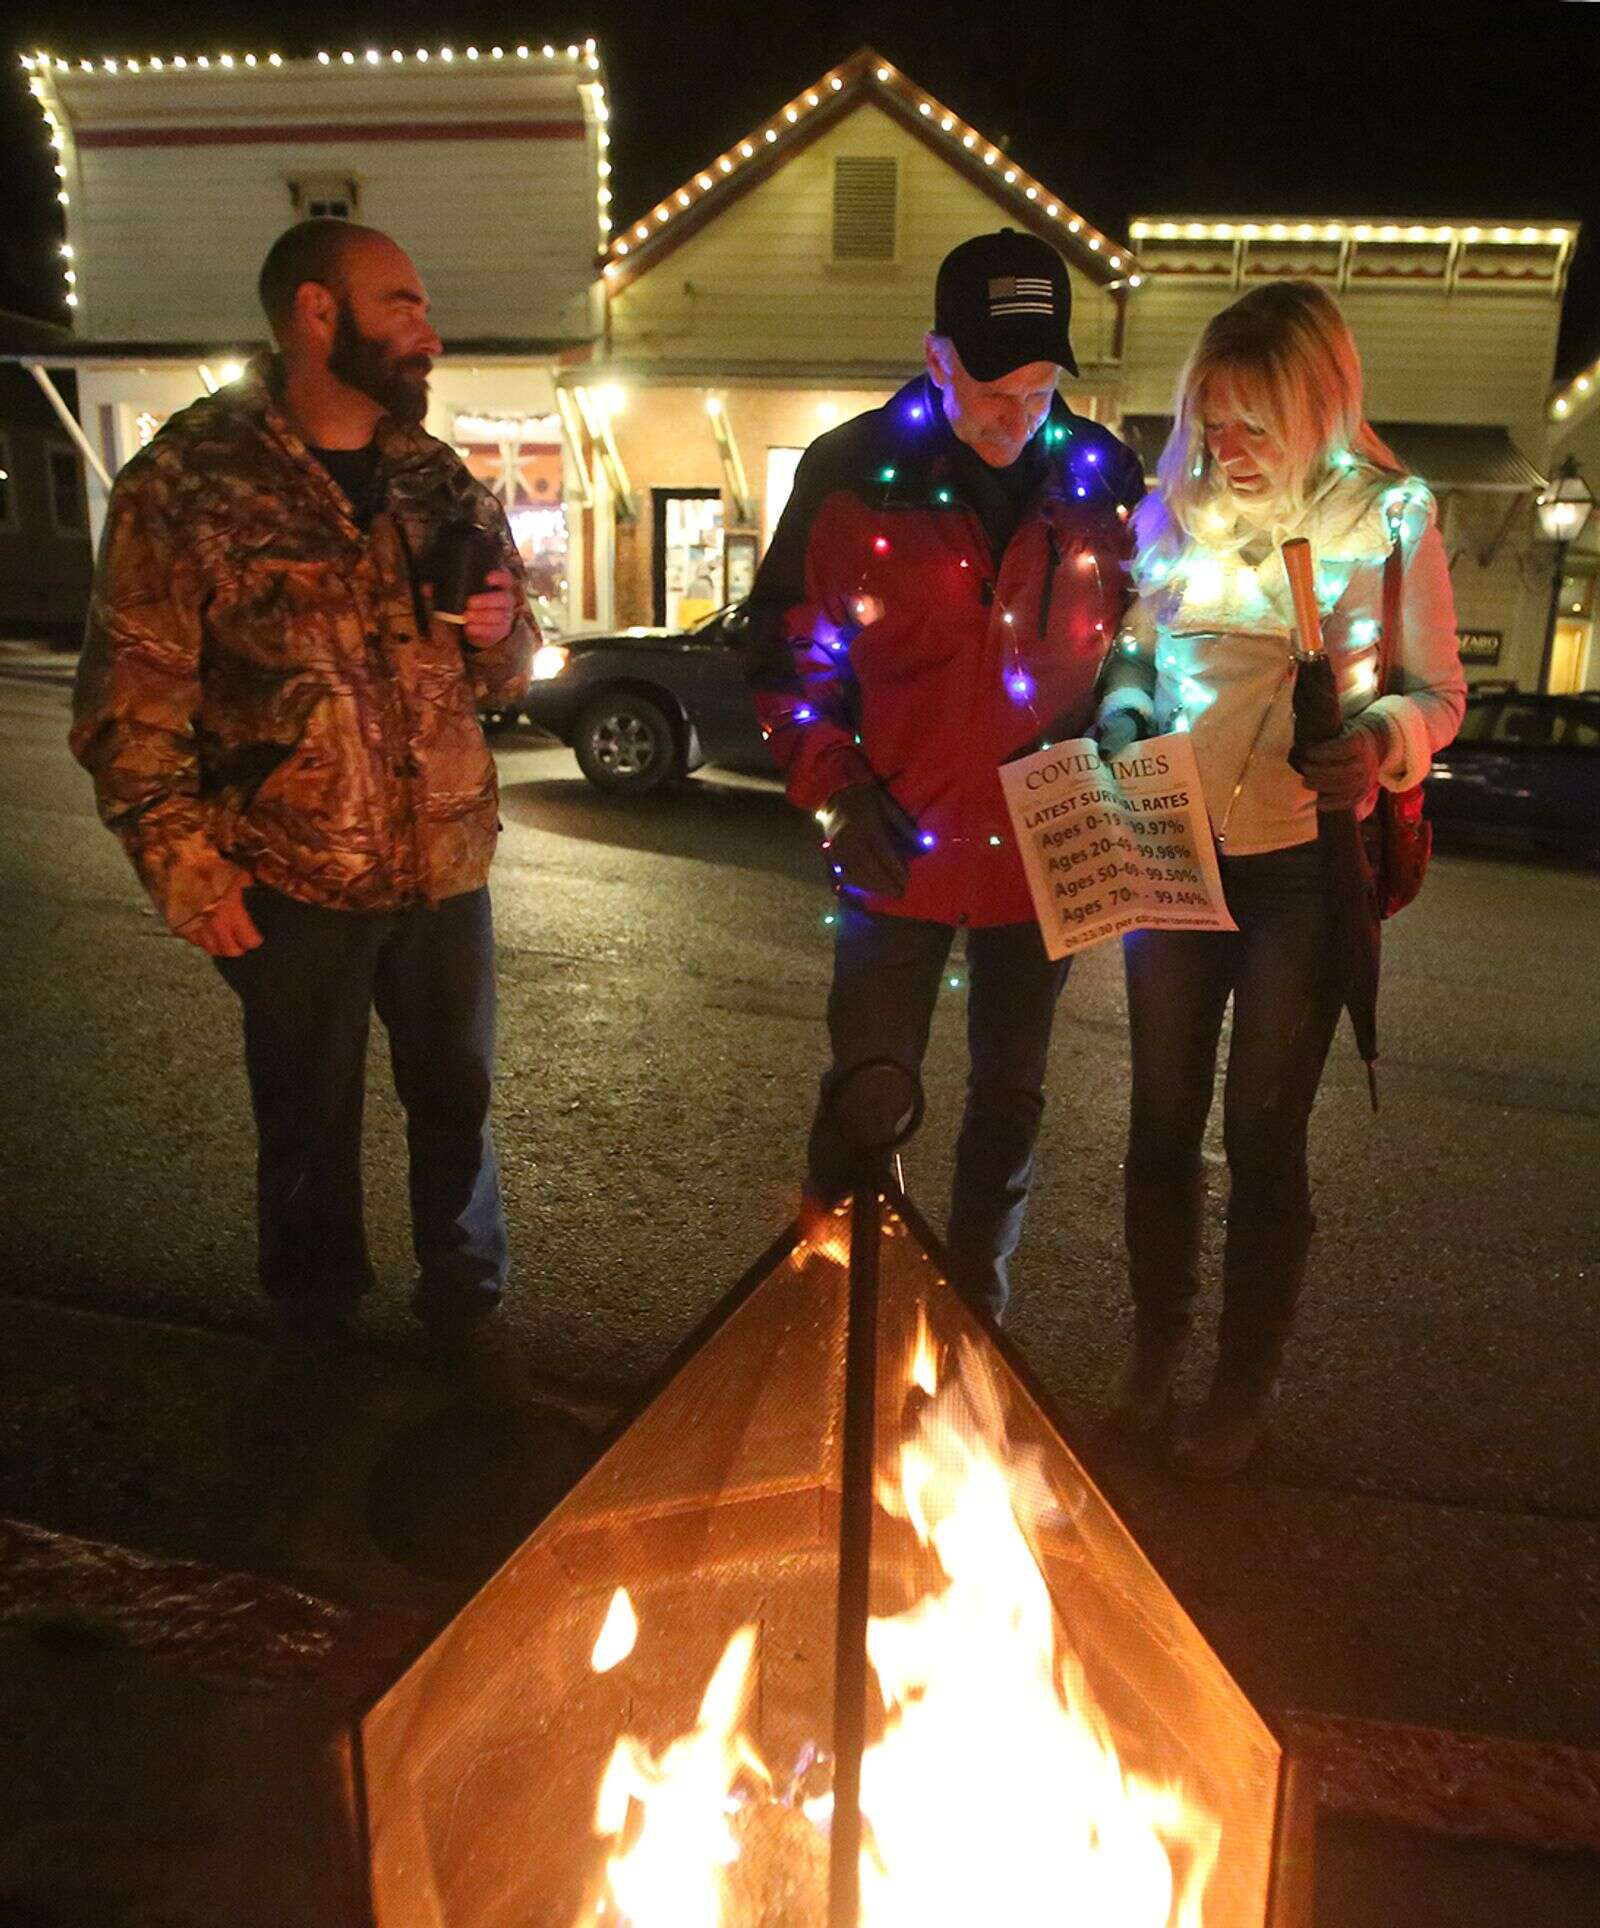 Folks wore festive attire as they attend the Nevada City Revival event Friday in downtown Nevada City.